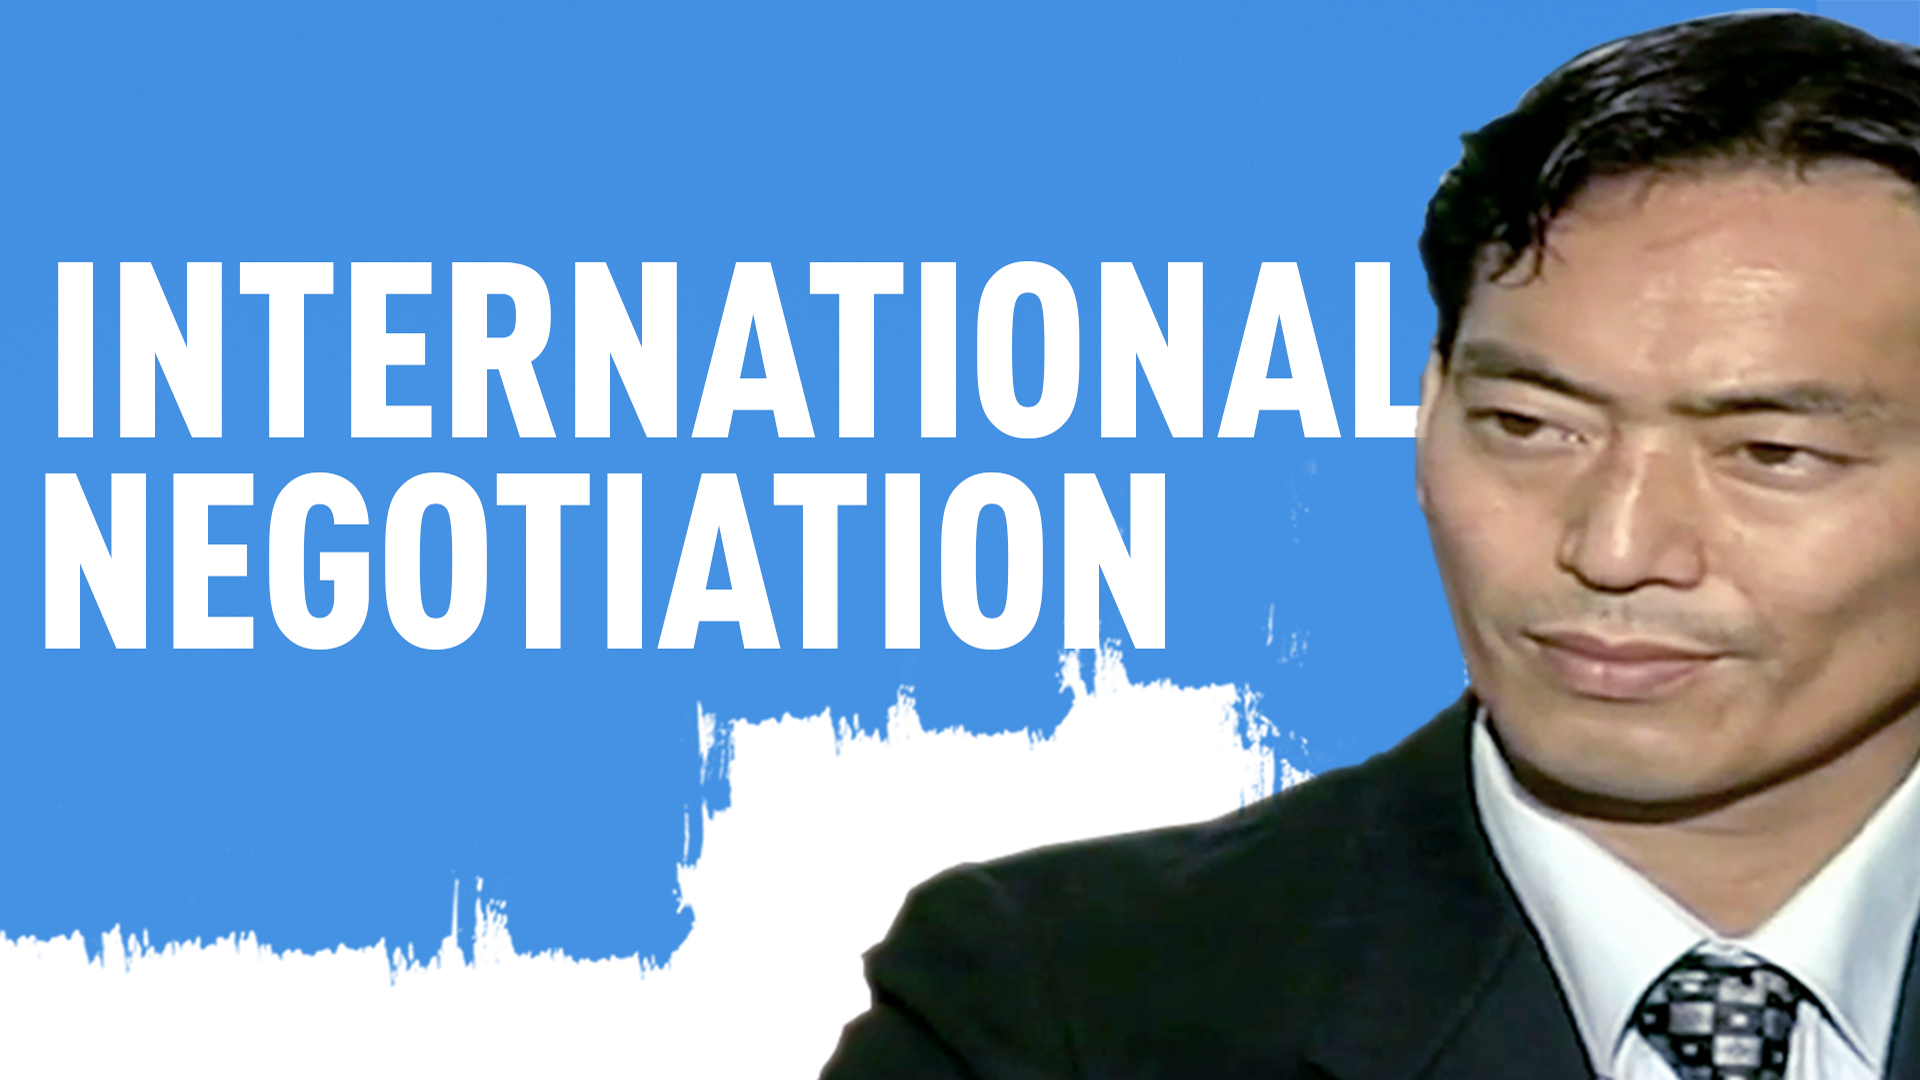 International Negotiation: Successful Deal-Making in Global Business Video